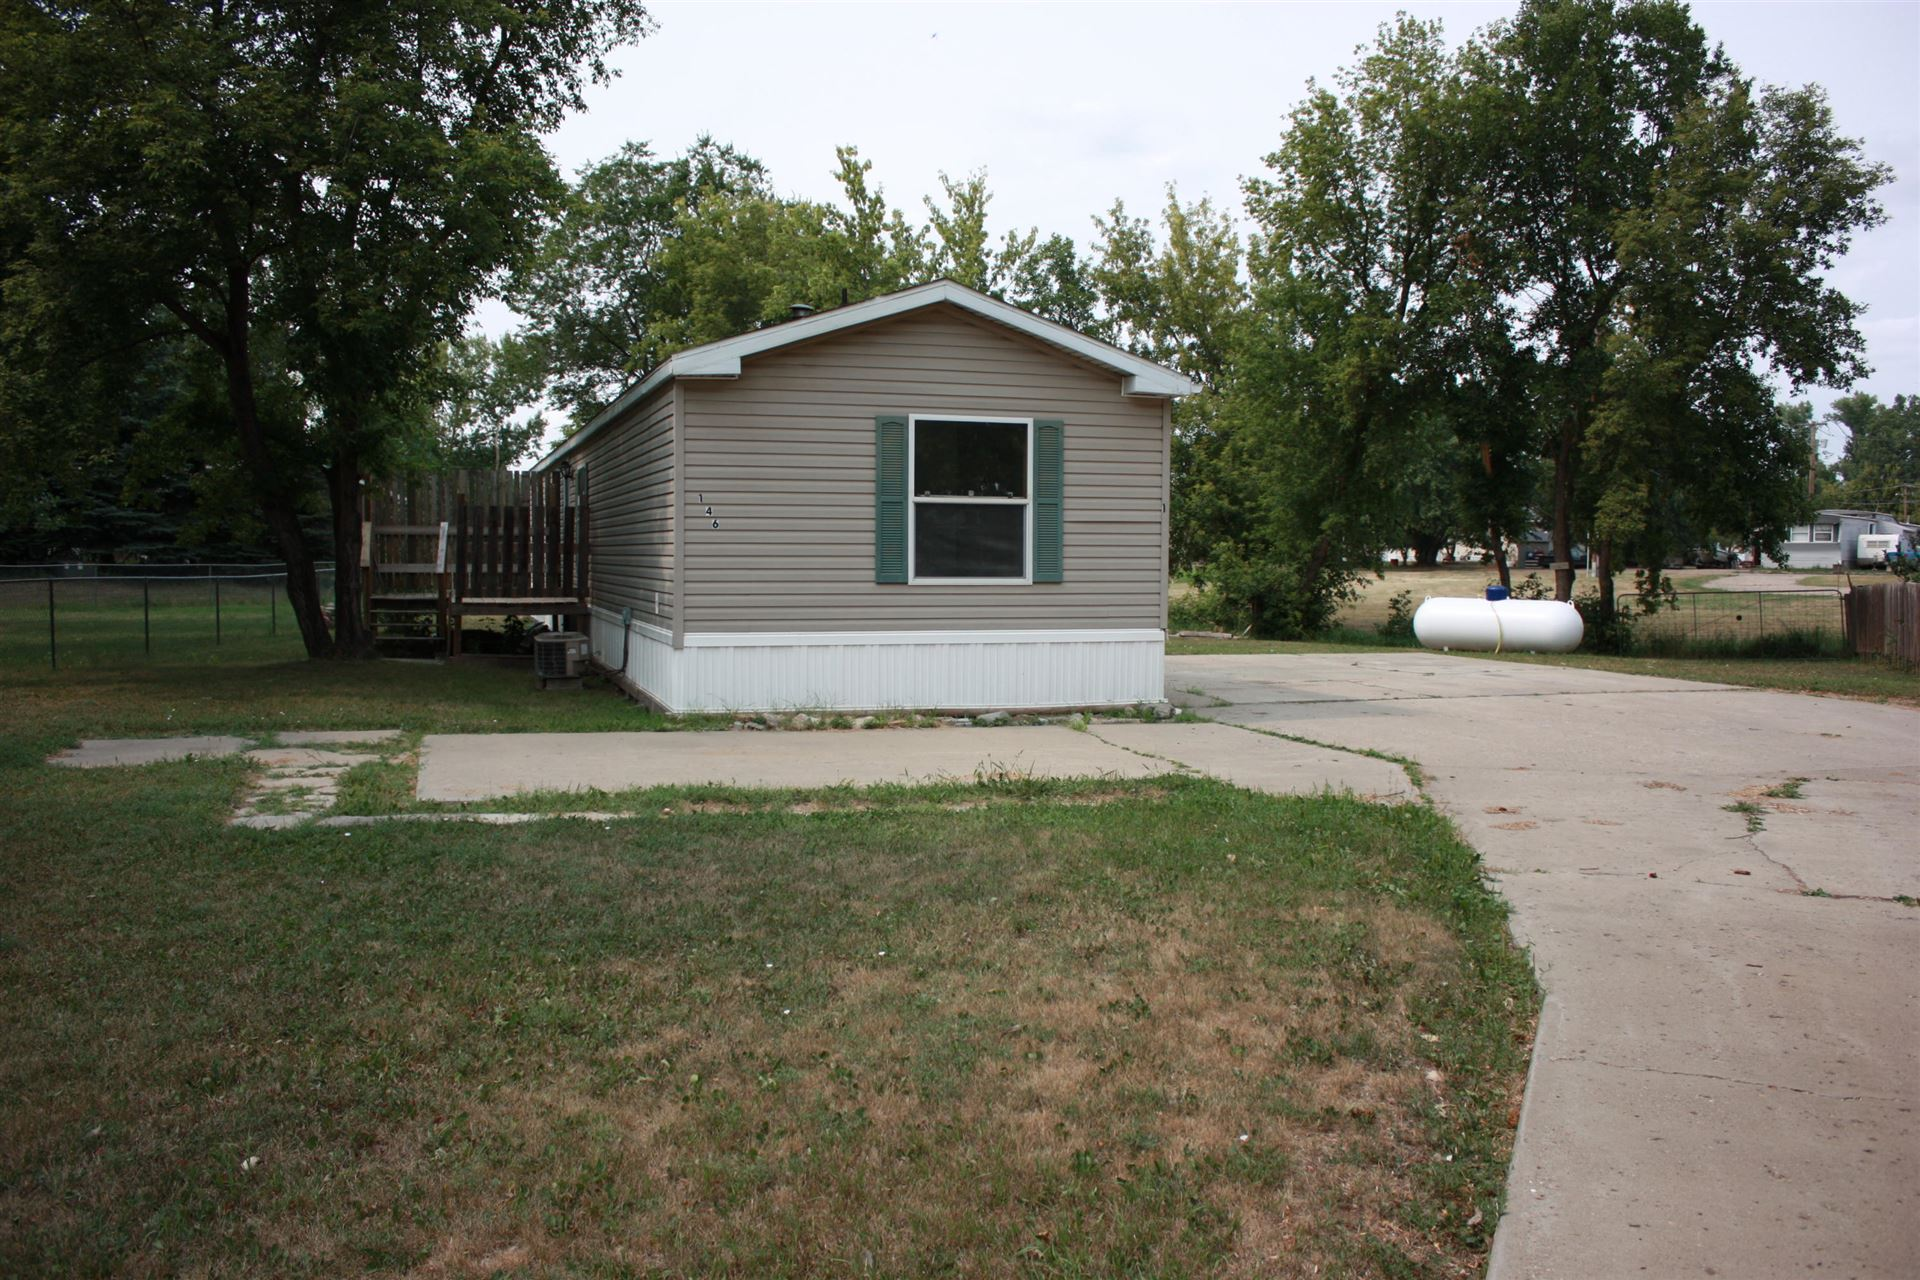 146 Interstate Street, Center, ND 58530 - #: 408779